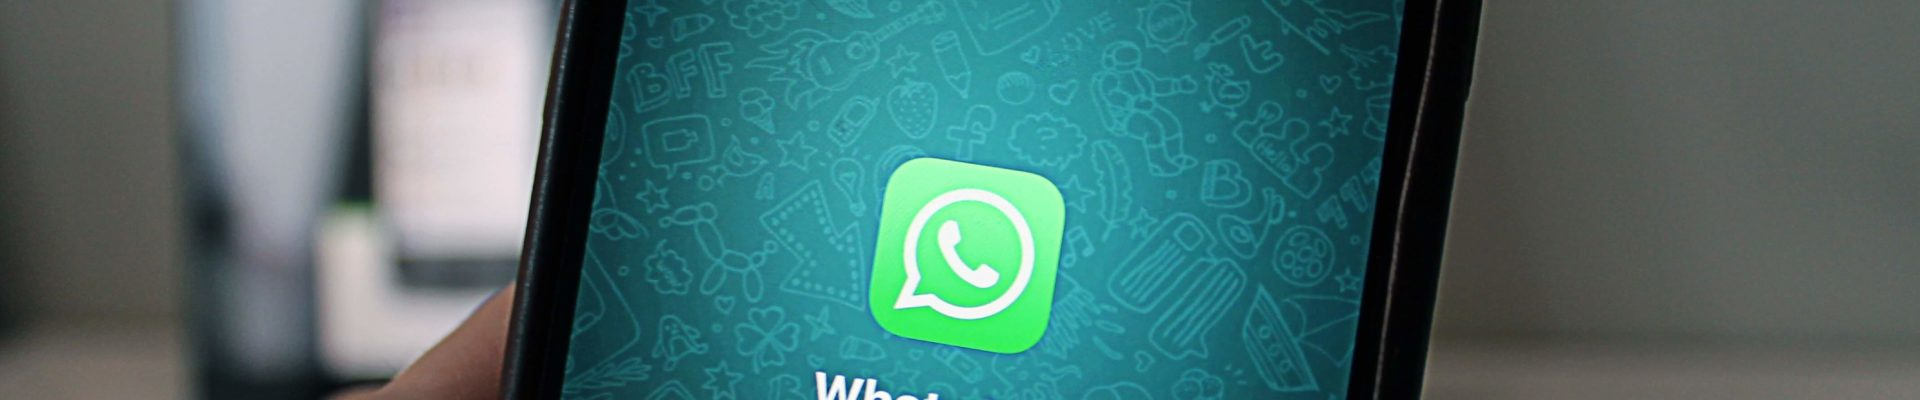 WhatsApp and Telegram media files aren't secure